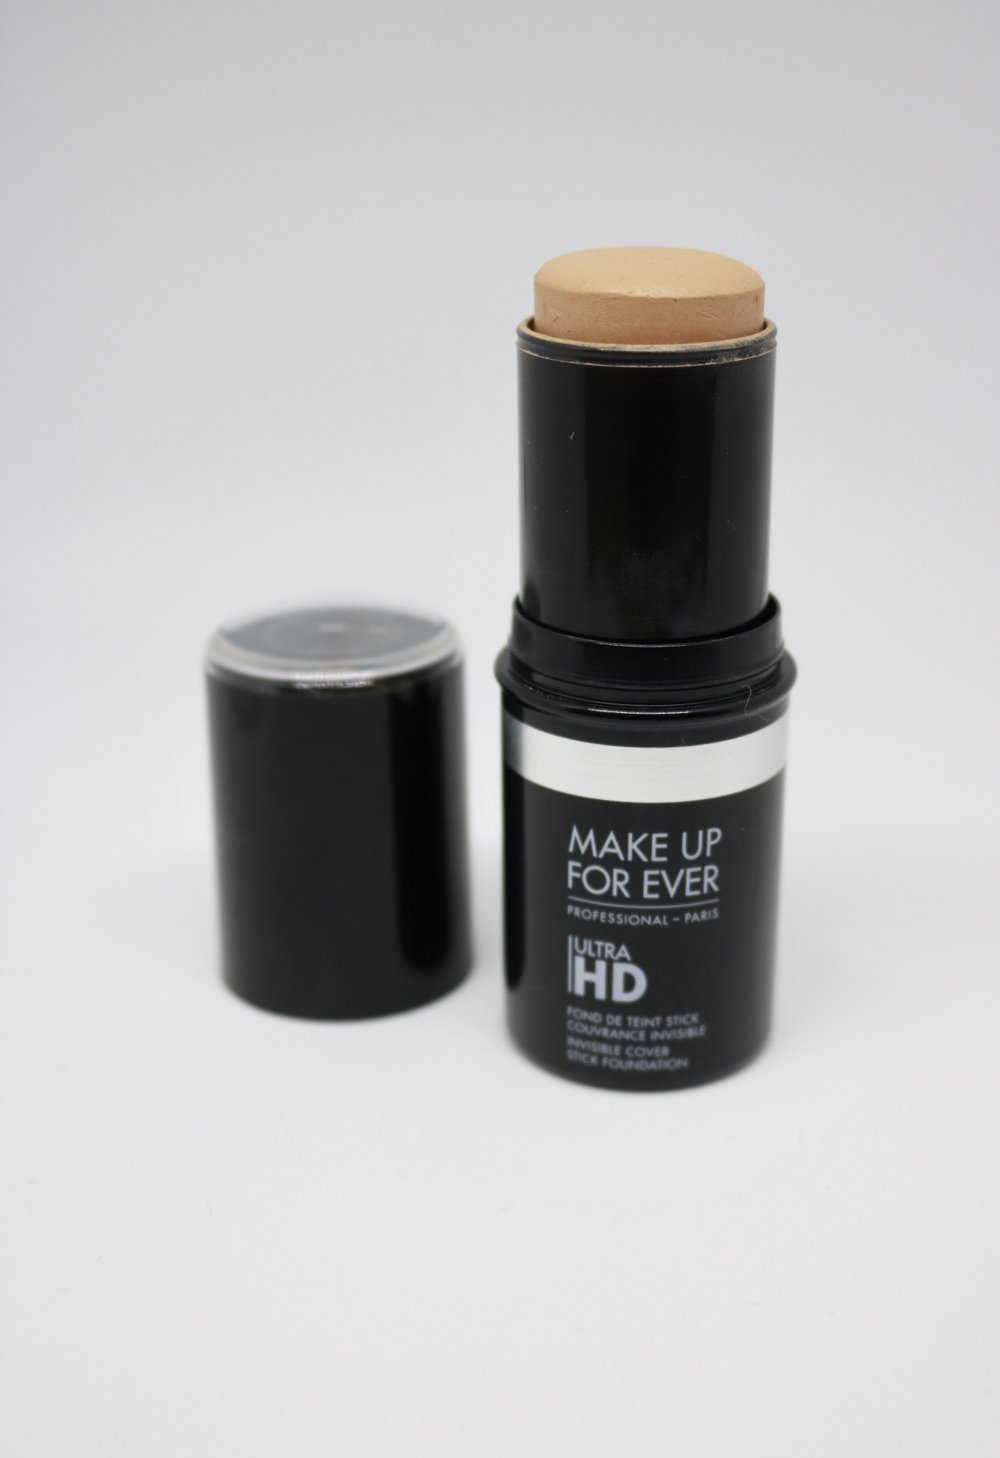 make up for ever HD foundation stick canada brittany lauren brittanylaurens